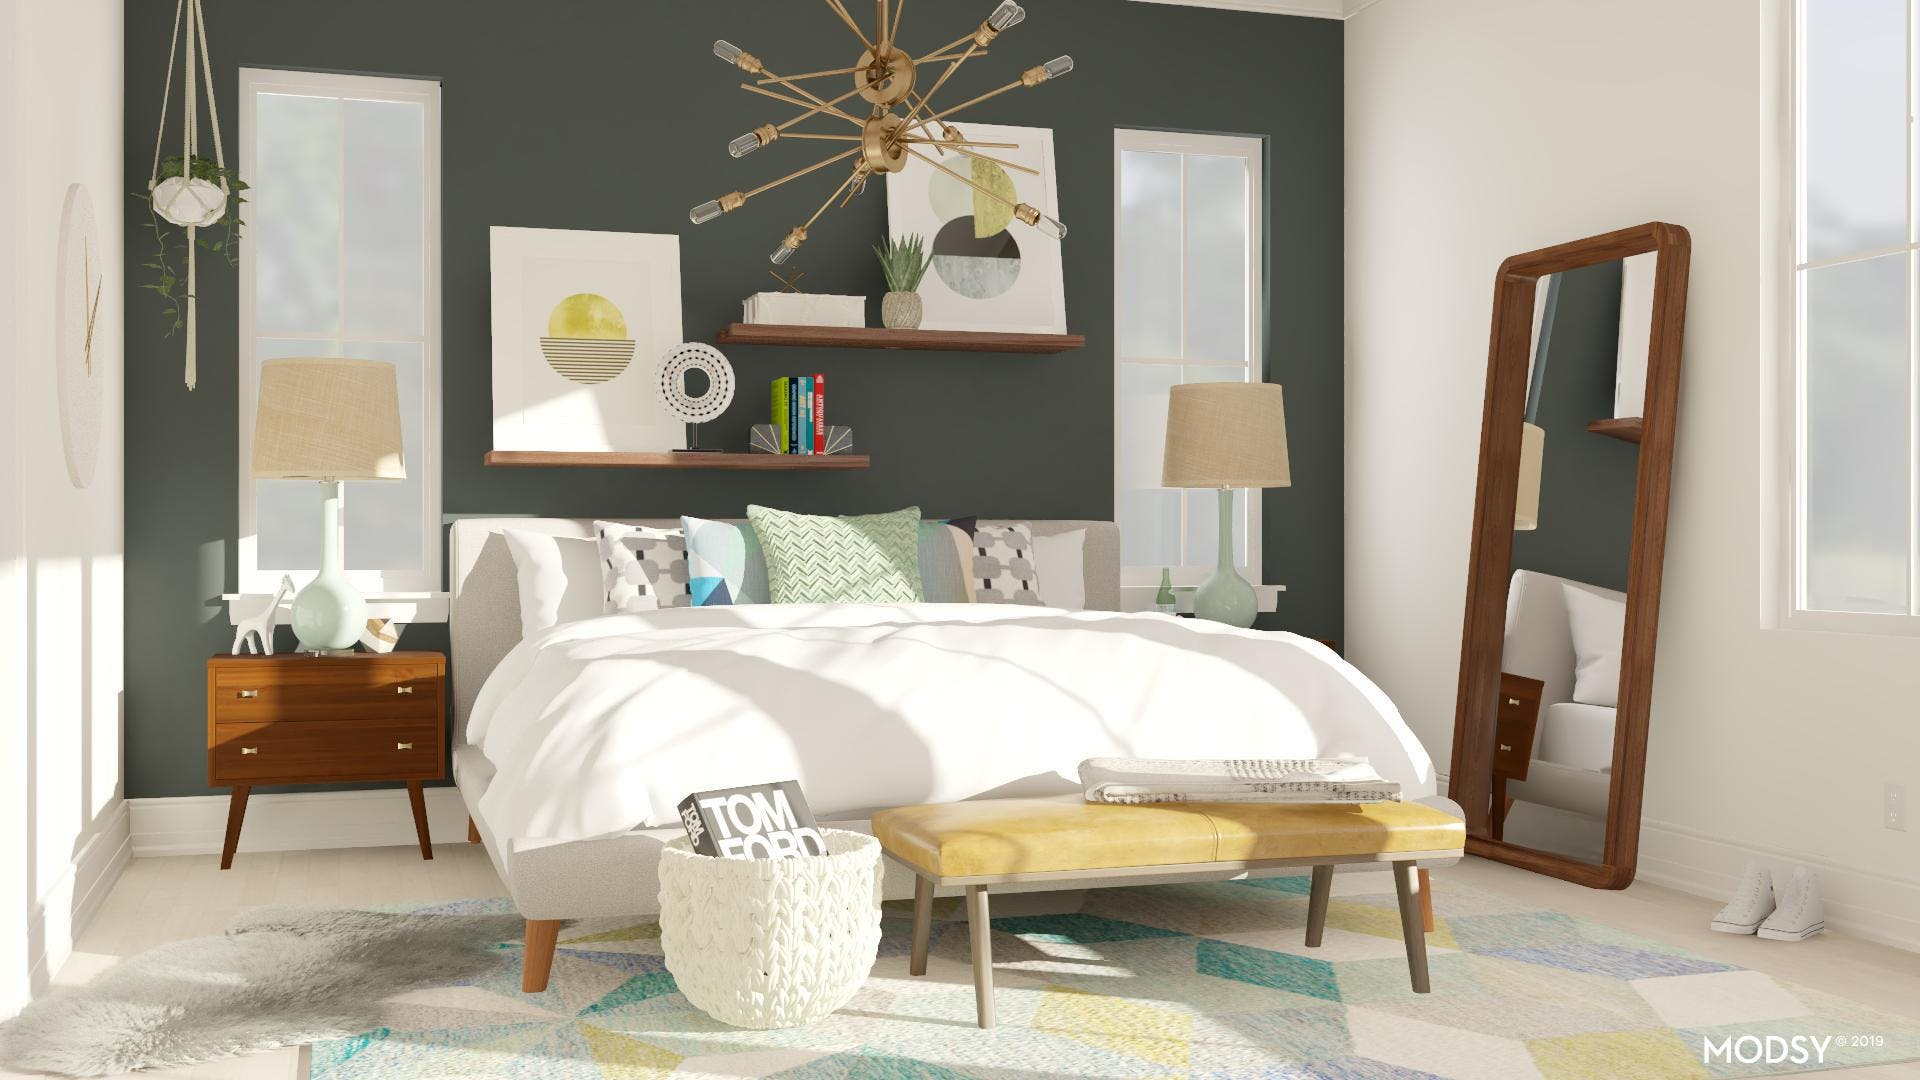 Green Accent Walls for a Mid-Century Bedroom